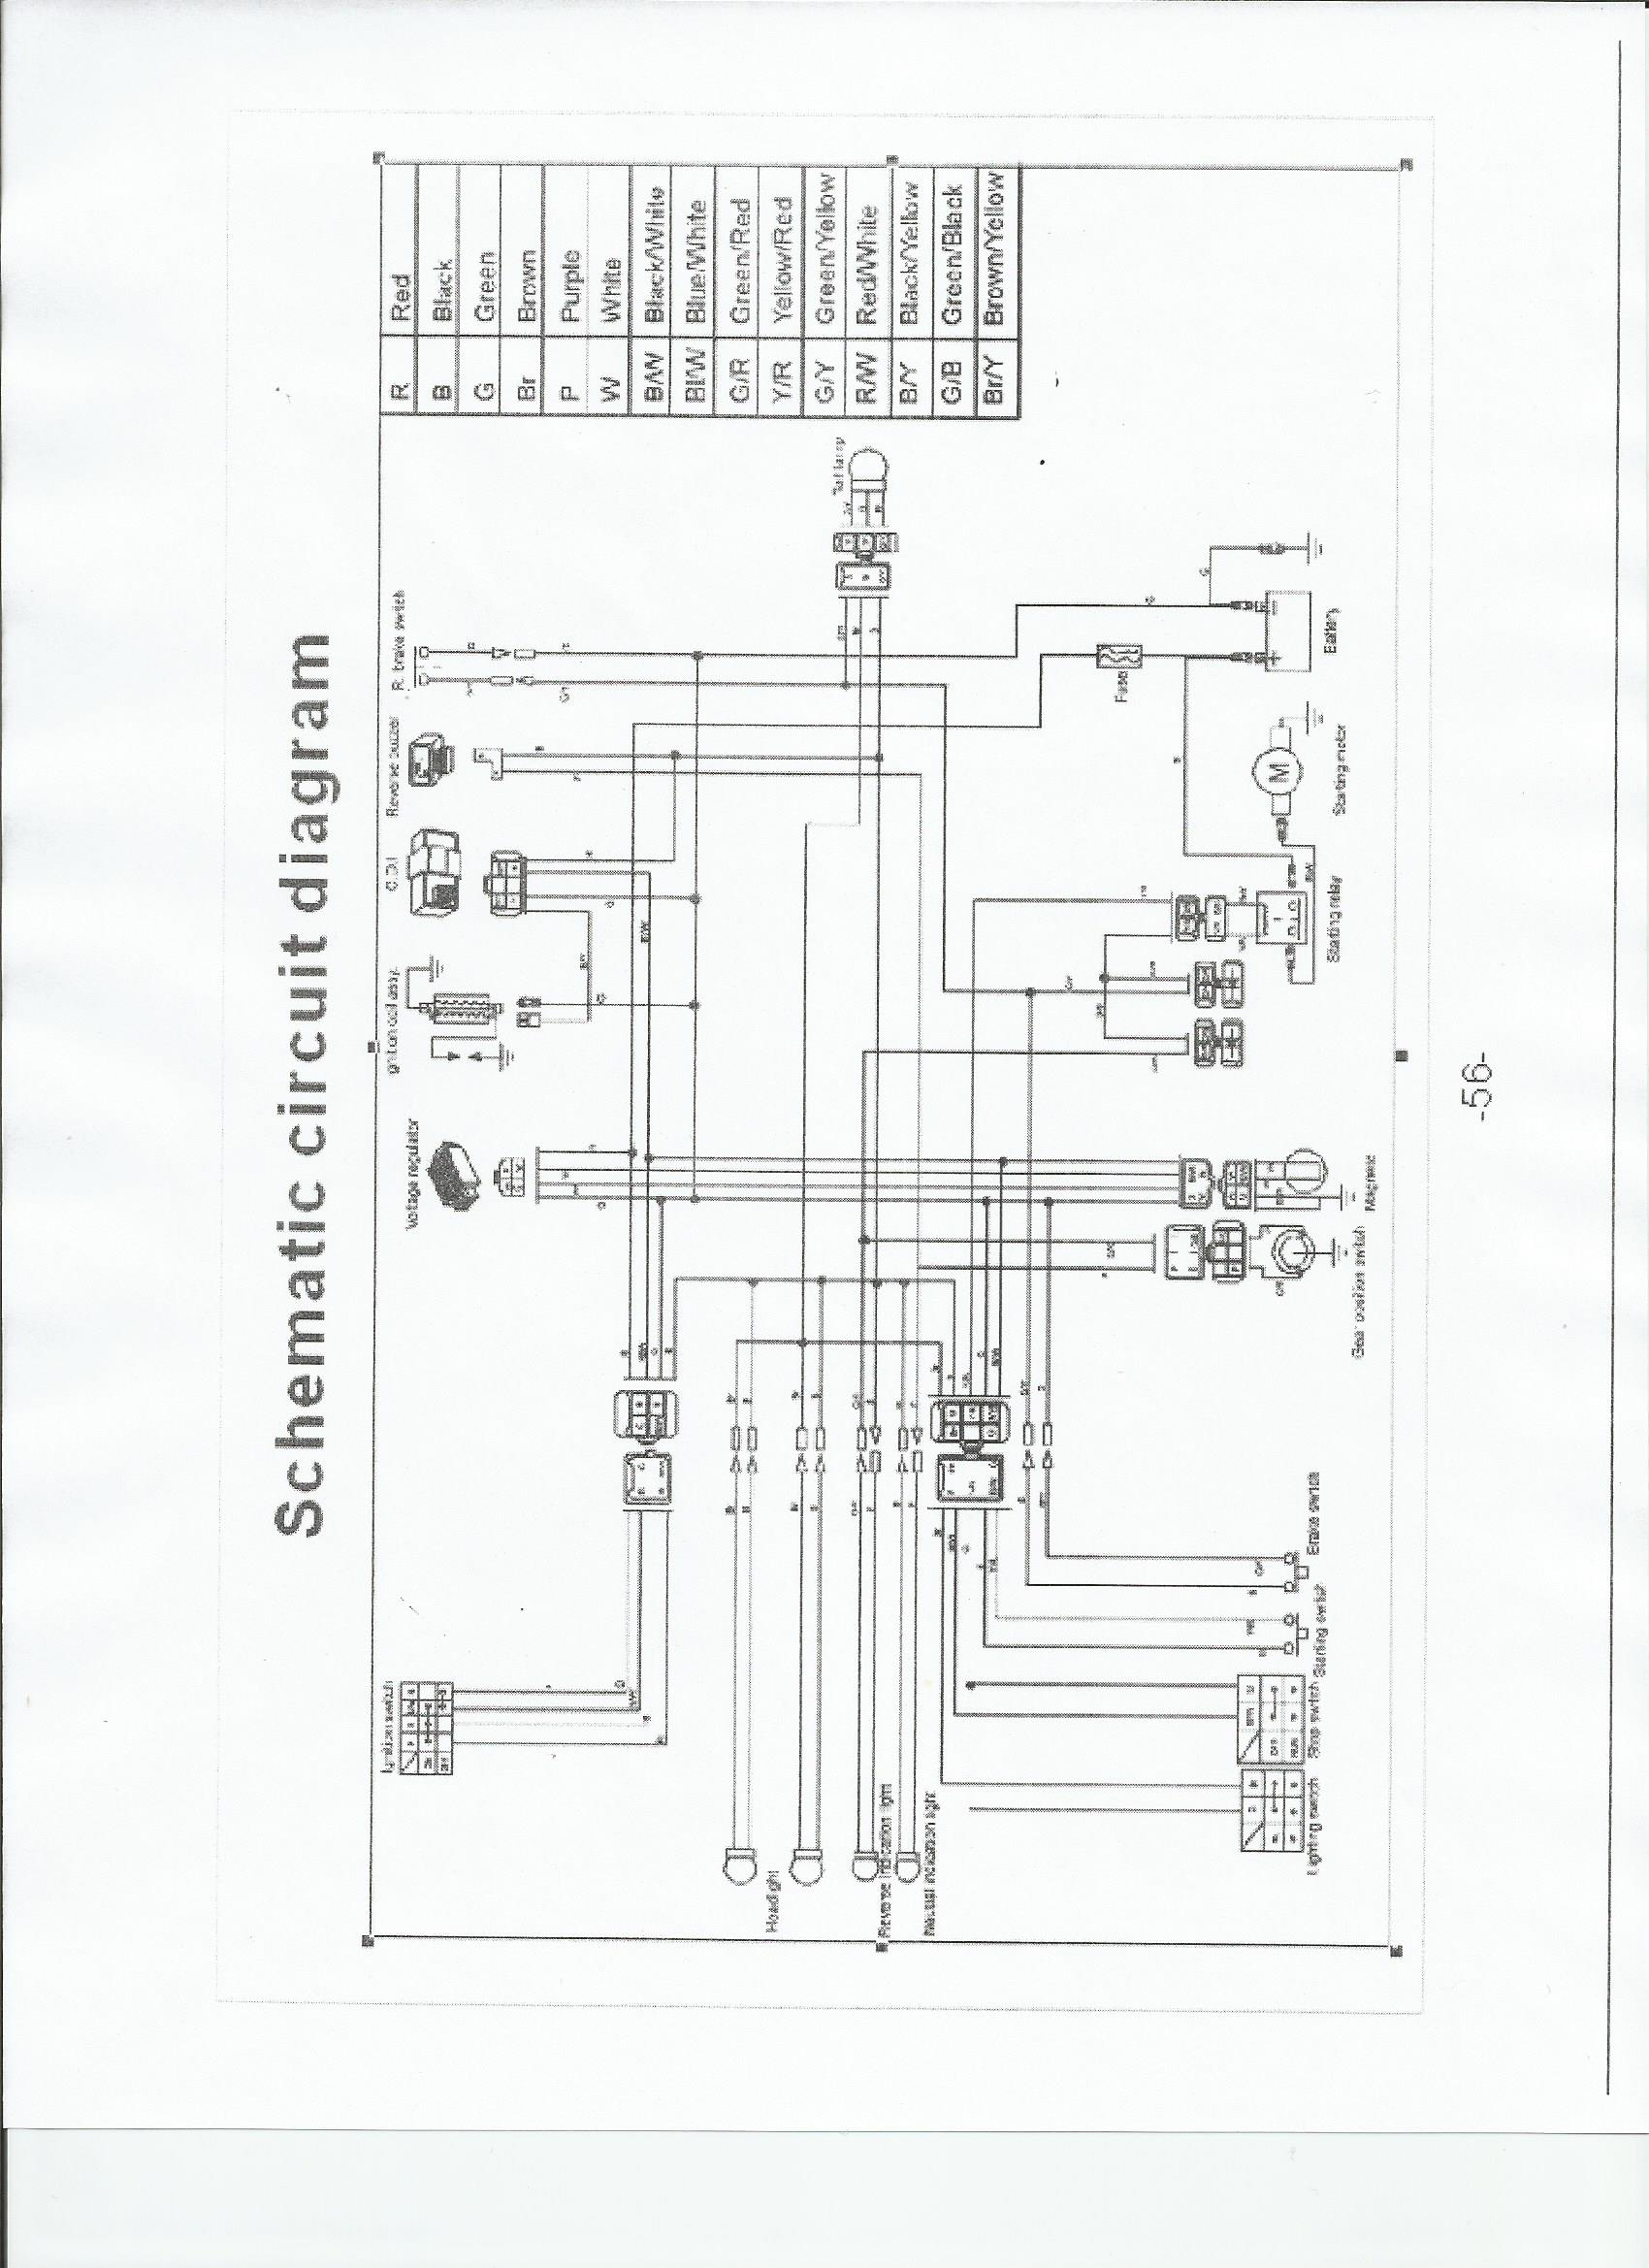 Elro Security Light Wiring Diagram likewise Two Hoses That Run From The Carburetor Is The Upper Hose Cut And Zip Tied Is likewise 110cc Chinese Atv Wiring Diagram further Atv 110cc Parts furthermore ROKETA ATV 29 STEERING ASSEMBLY PARTS. on 110 roketa wiring diagram